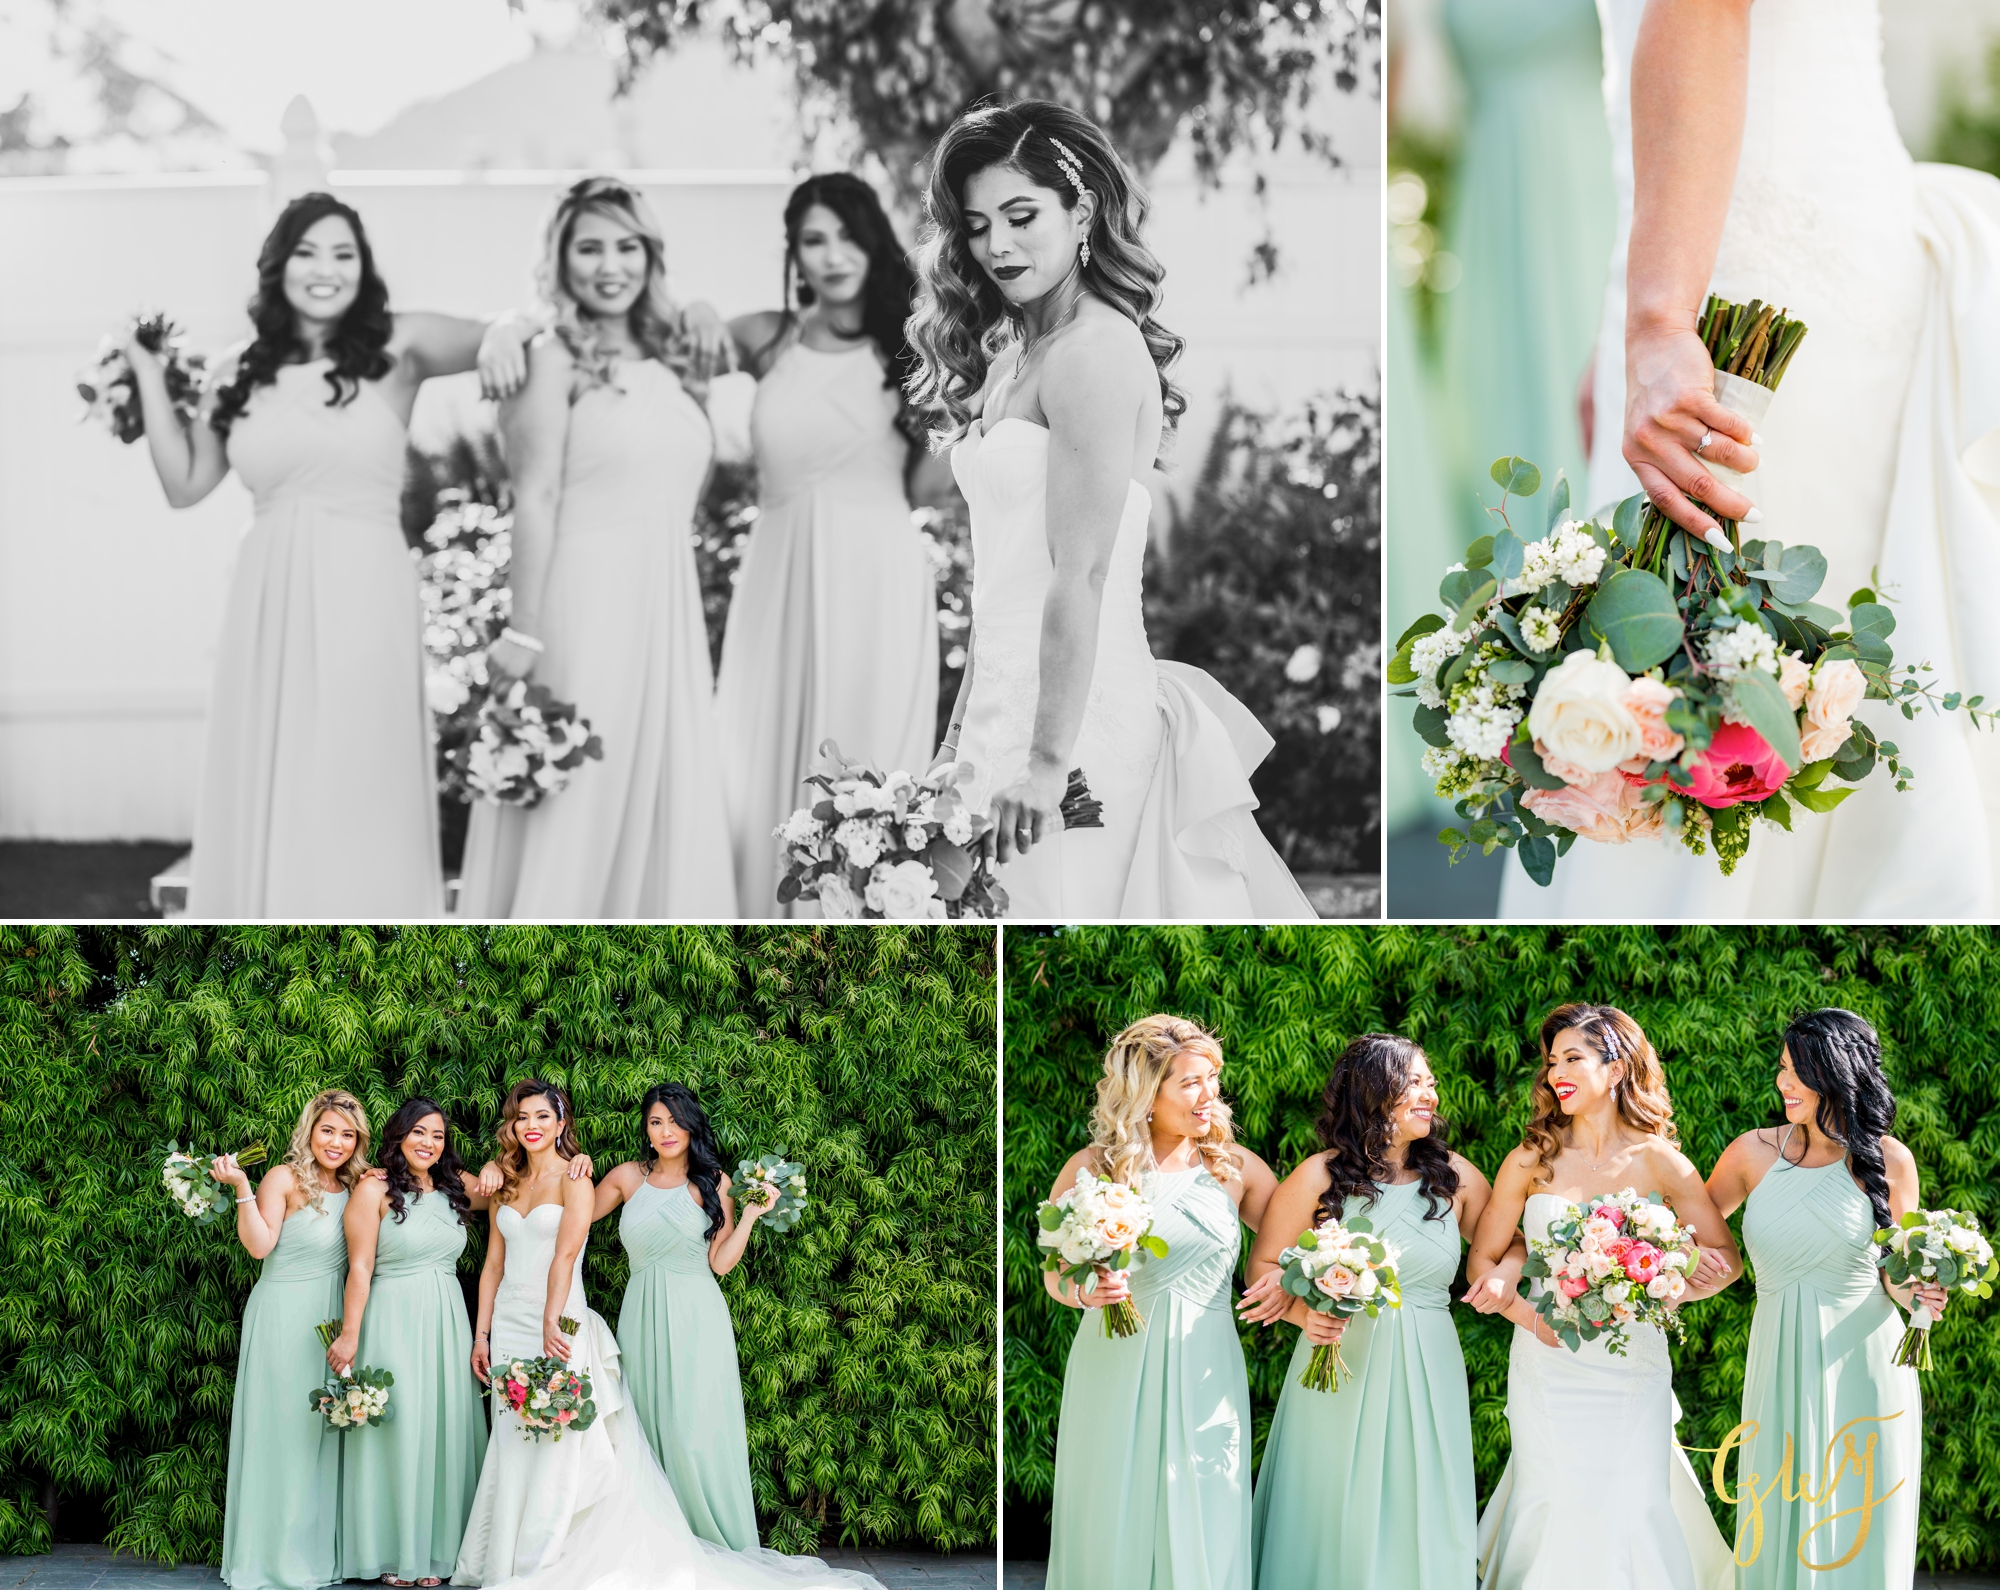 Andy + Caselyn's White House Event Center Orange County Spring Wedding by Glass Woods Media 18.jpg